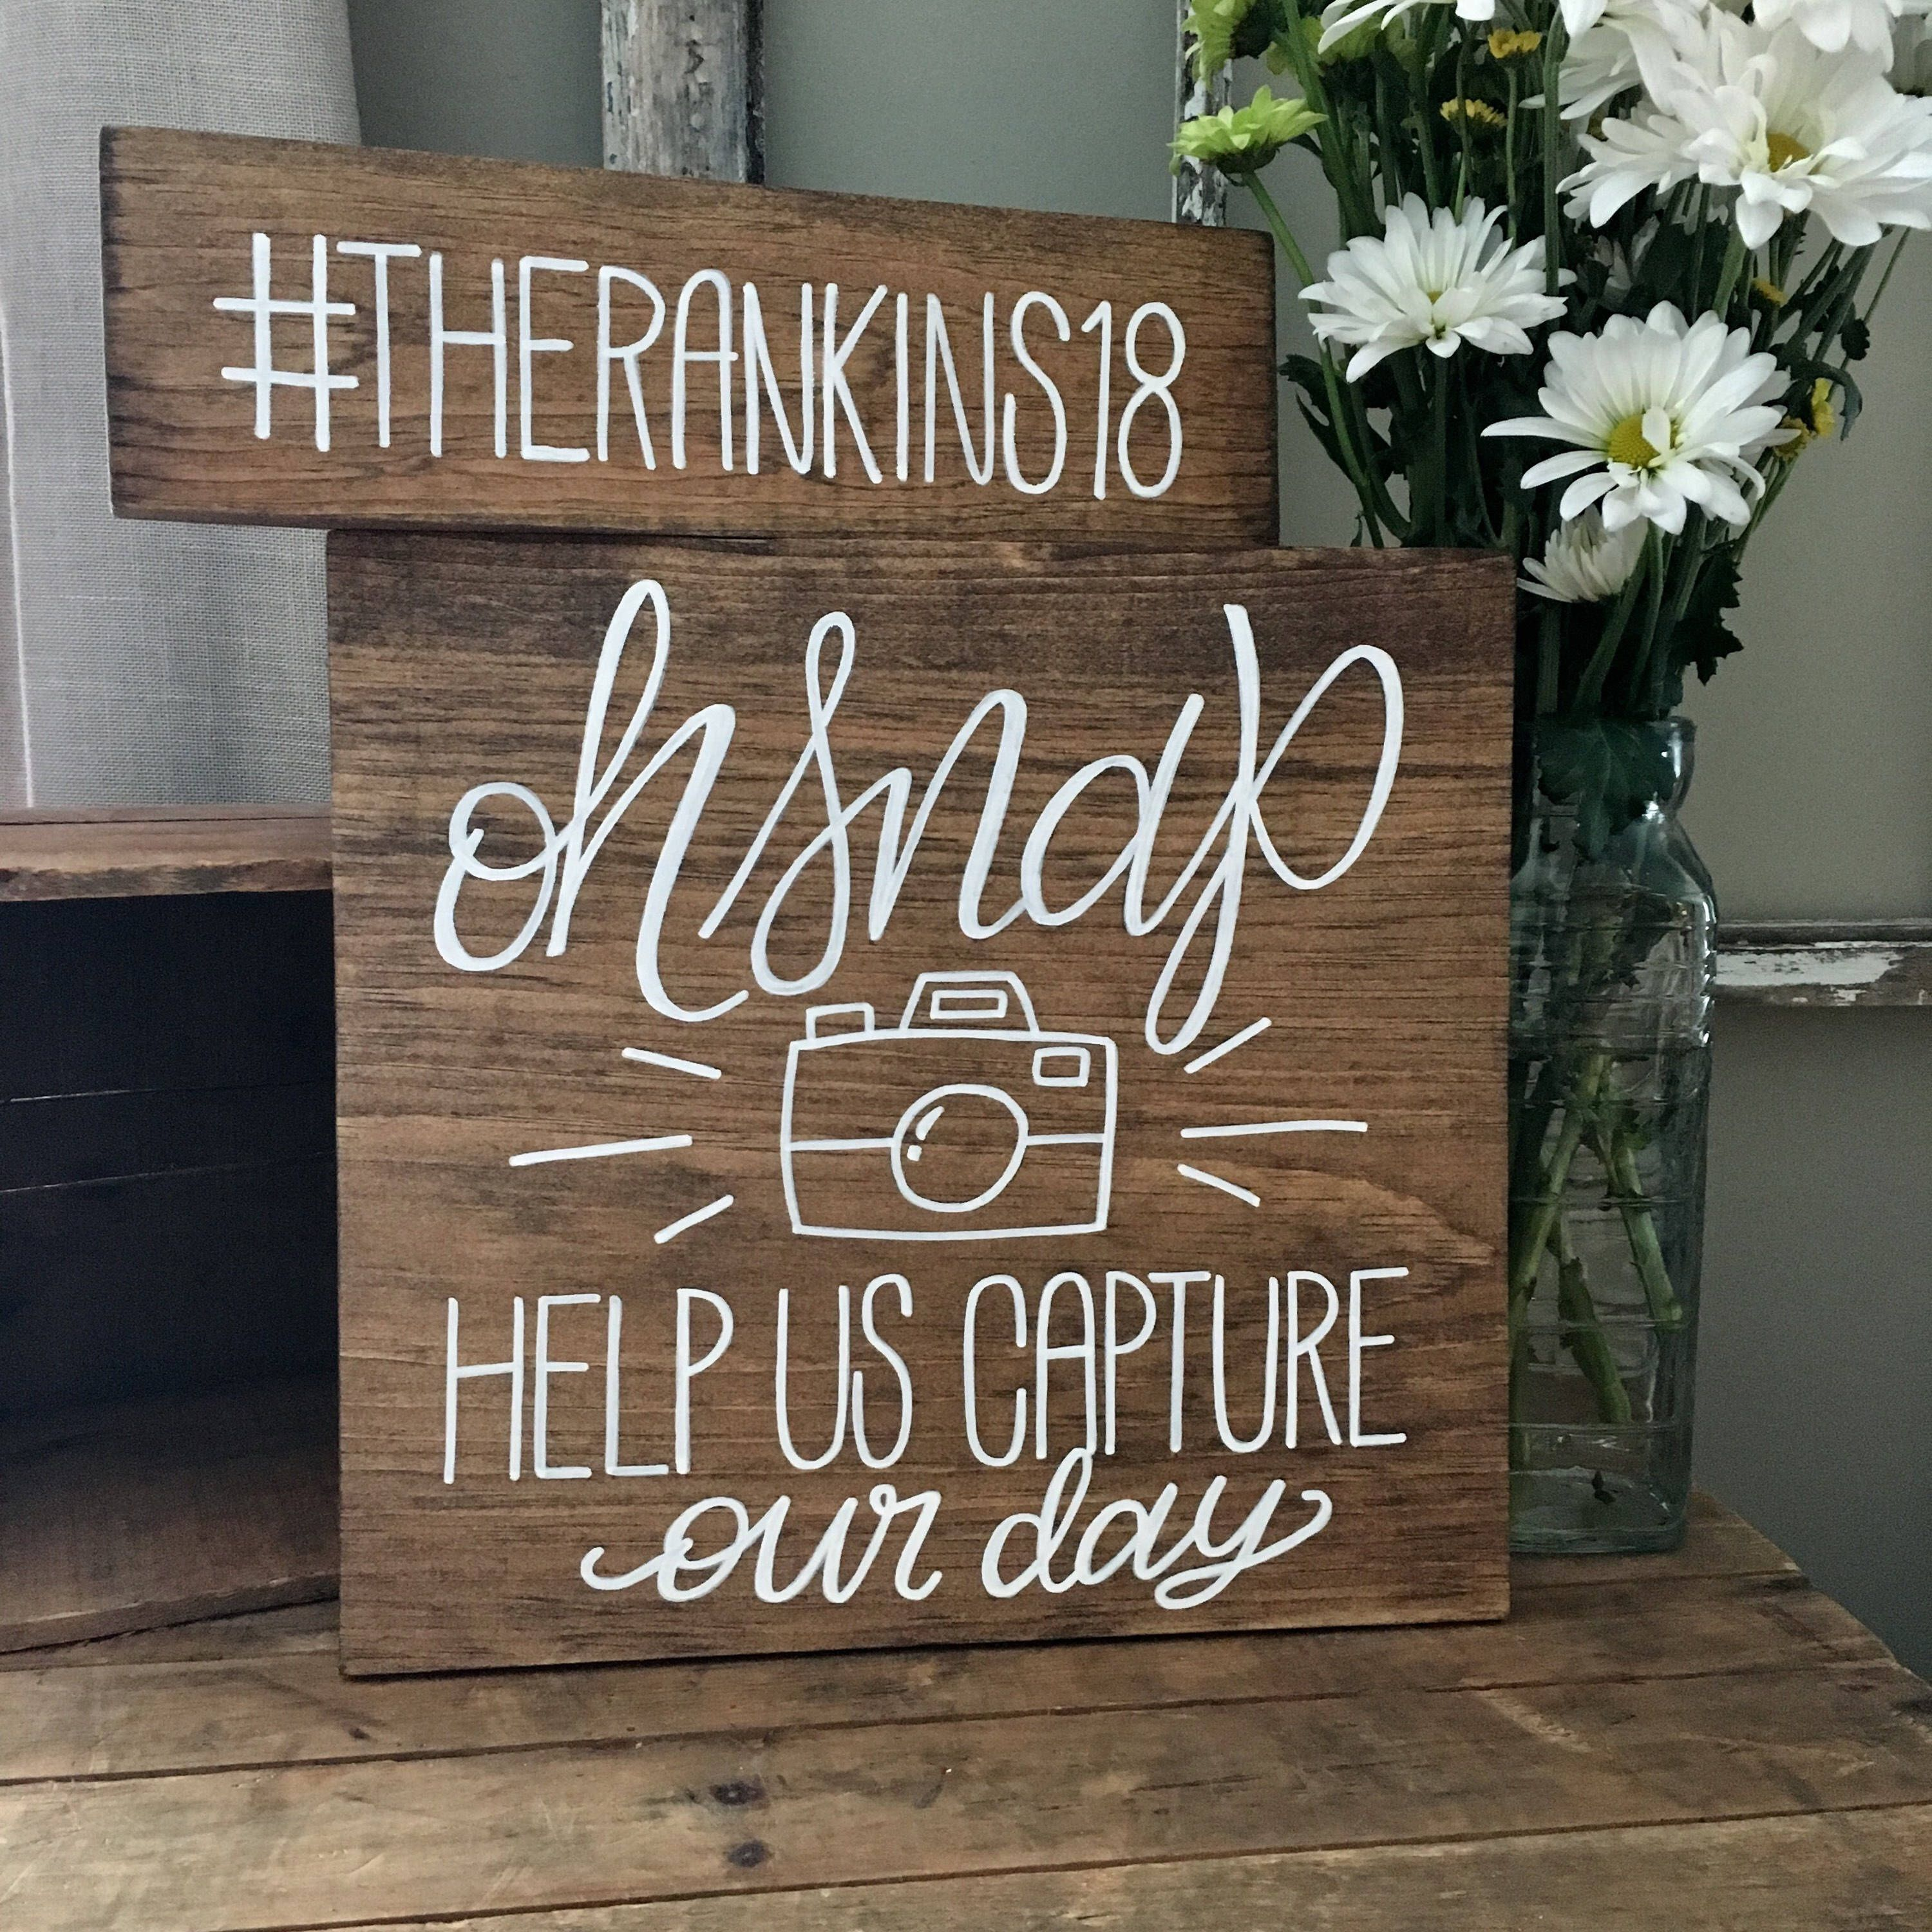 Oh Snap wedding sign, instagram wedding sign, hashtag sign